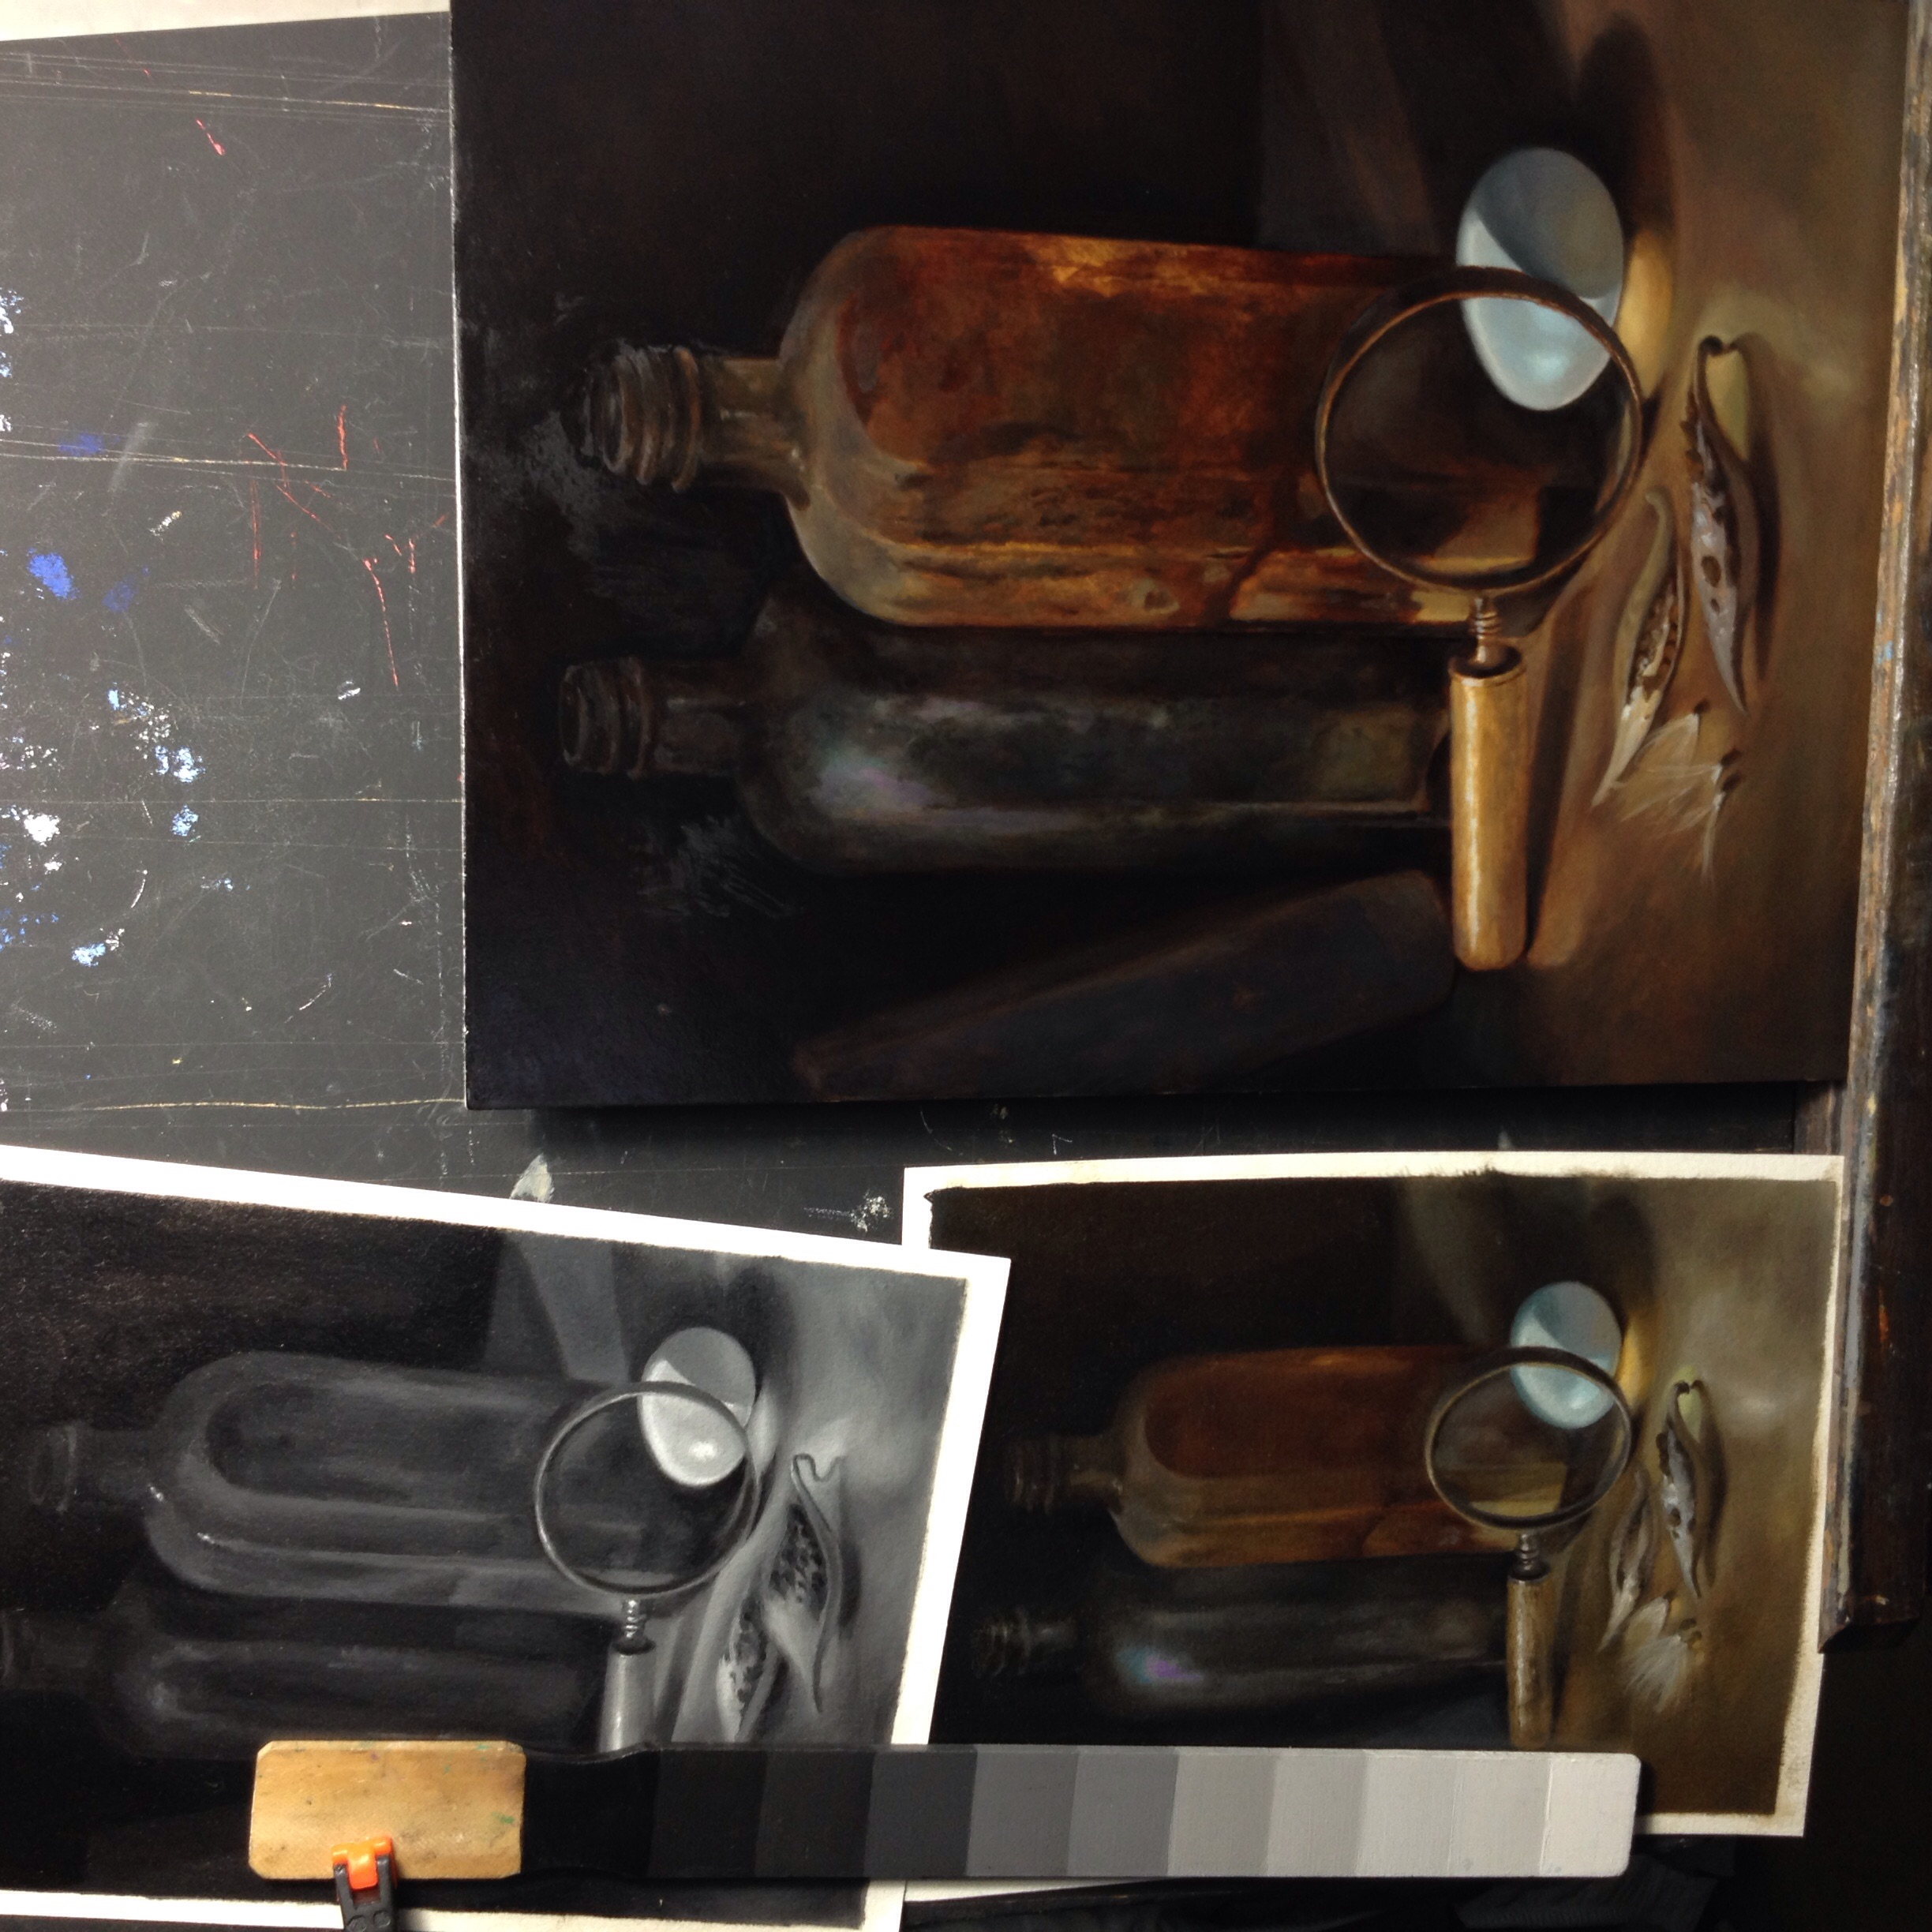 """Value and color studies (left) for a 12"""" x 9"""" oil painting on panel in progress (right)"""